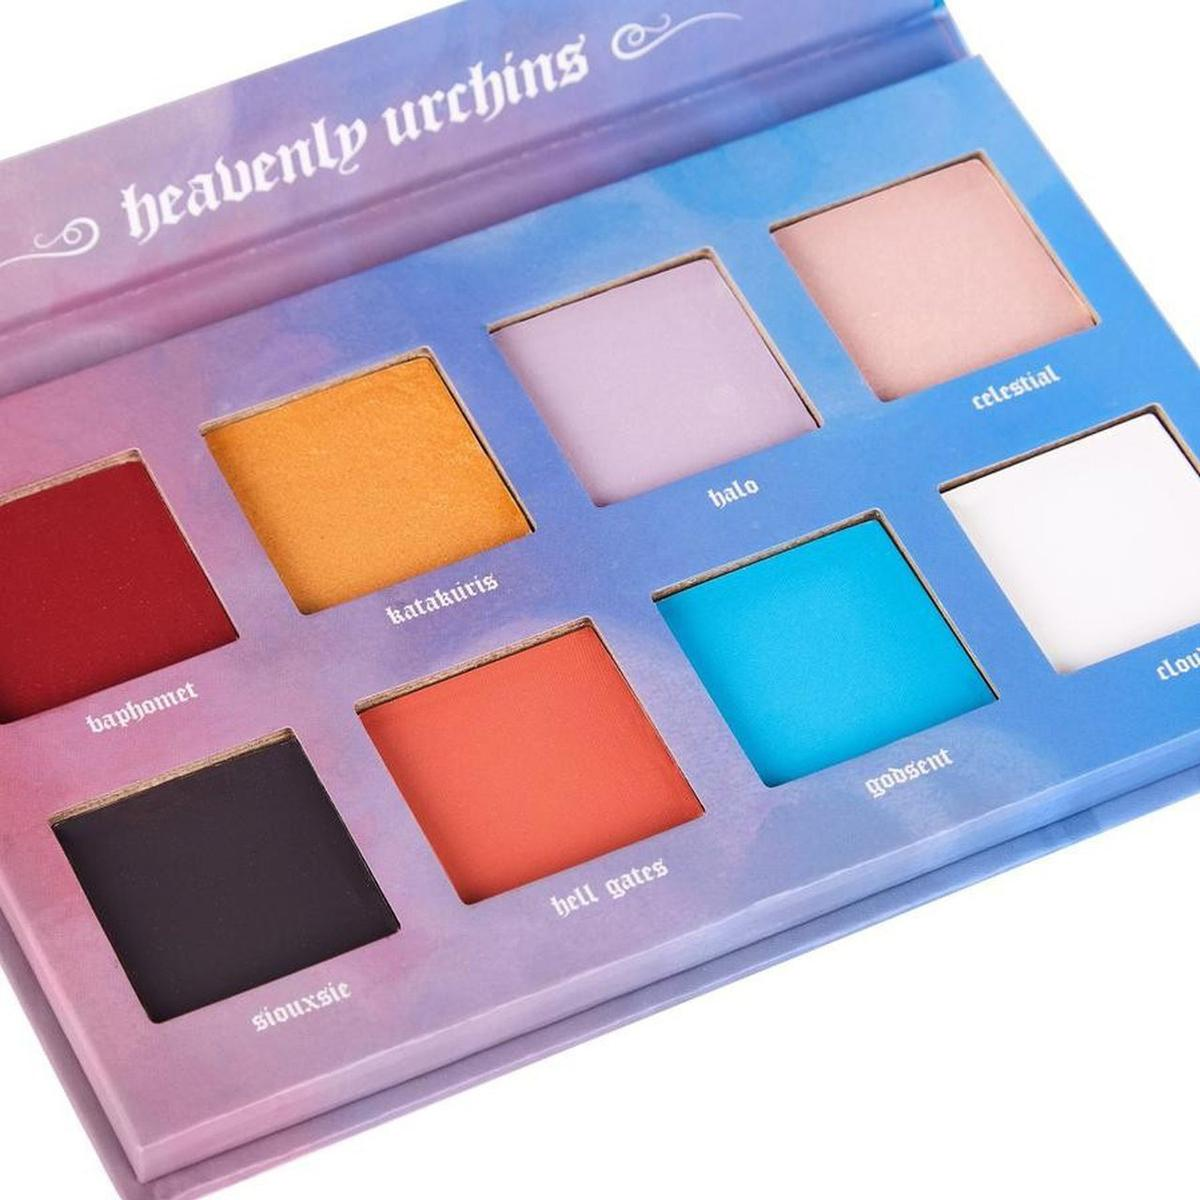 Brand new  Celestial hosts and creatures of the other-world proclaim joy. The Heavenly Urchins palette of divine and devilish shadows is now available in eight colours. Three glorious shimmers and five marvellous mattes. Let your creativity flourish with shades designed to let you be you. Our vegan and cruelty-free makeup is packaged in a sturdy box featuring original artwork by Wella Lee. At Cult Candy, we want you to be able to express yourselves in